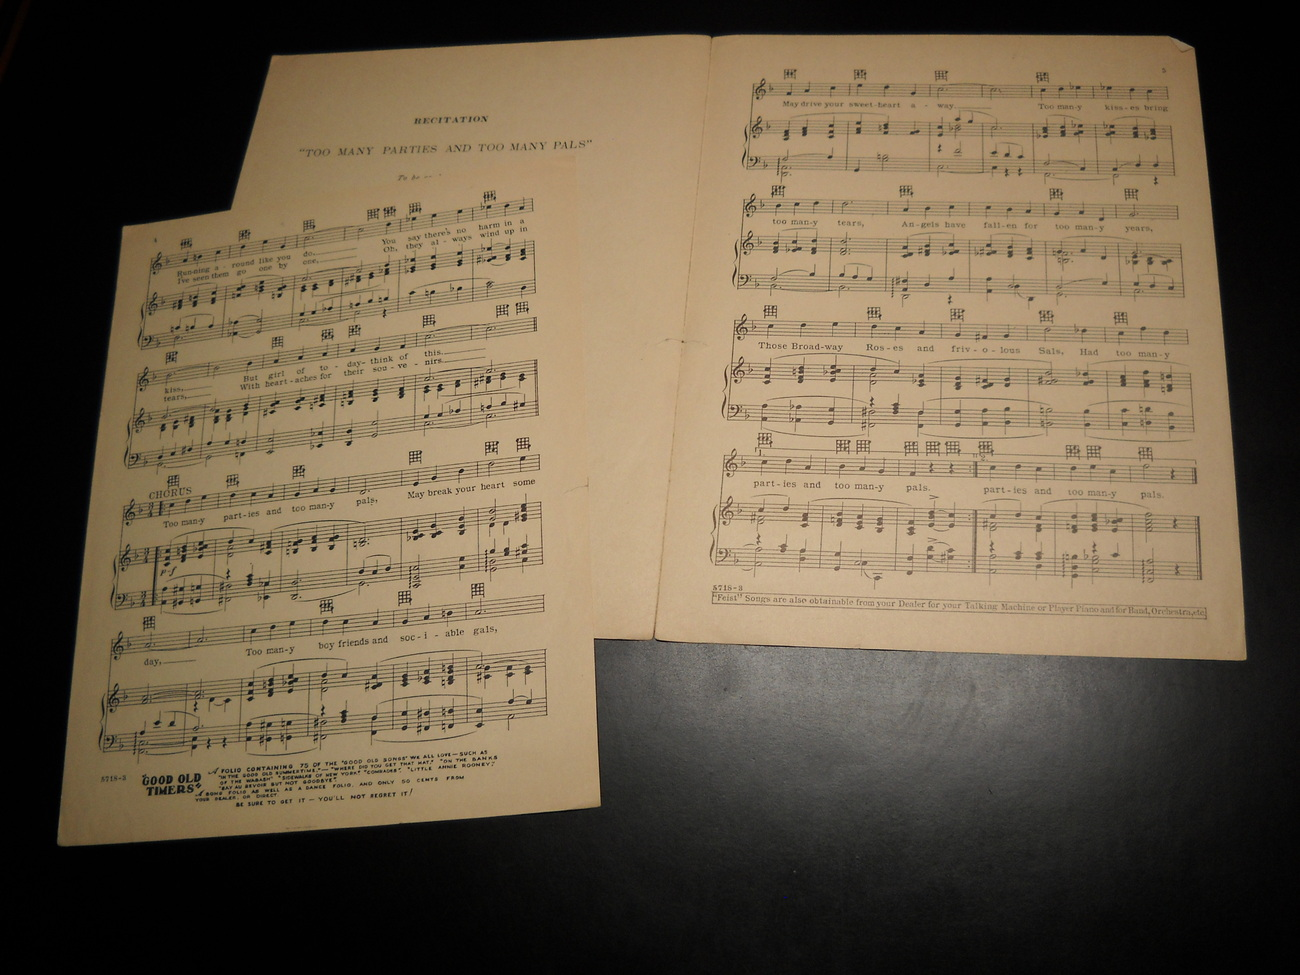 Sheet_music_too_many_parties_and_too_many_pals_helen_moretti_billy_rose_1925_leo_feist_06